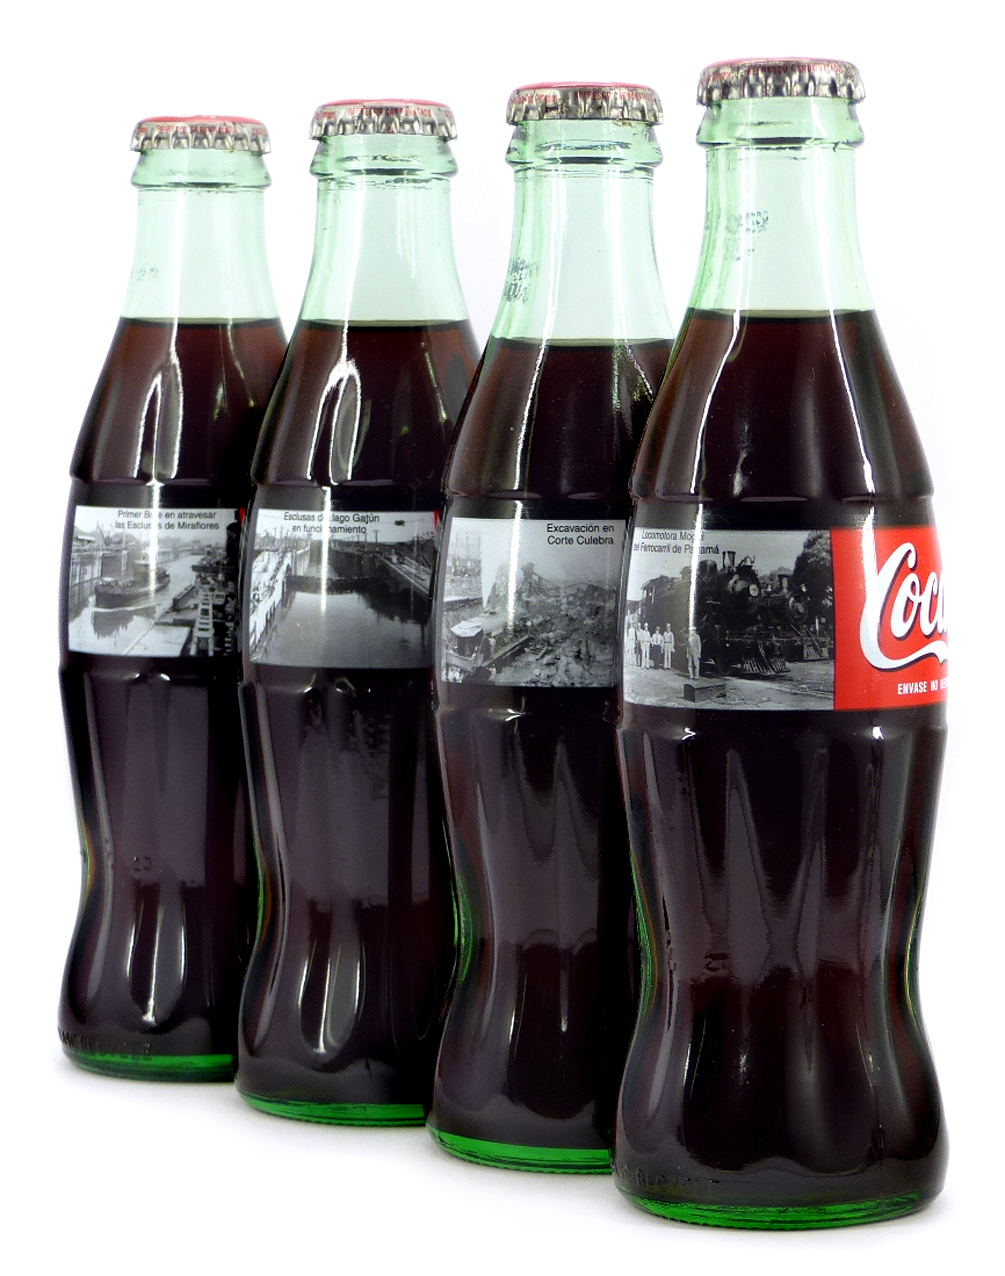 Coke Bottle from Panama (PA001B)